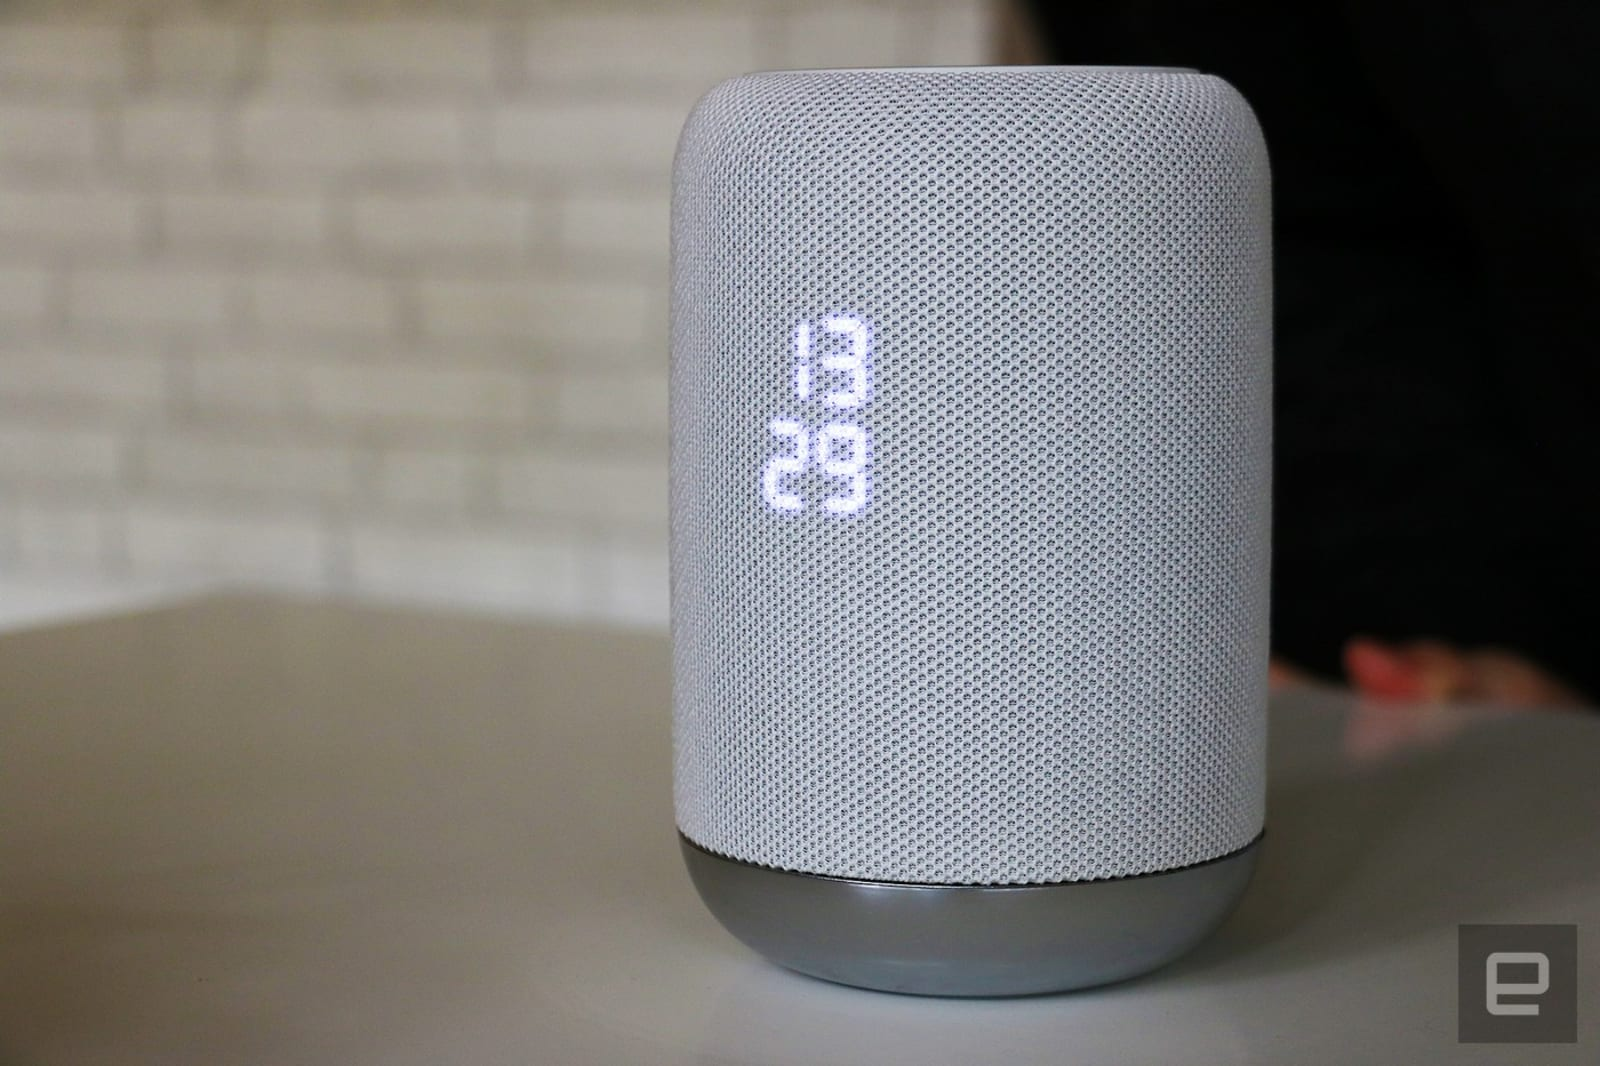 Sony's smart speaker gives Google Assistant a more capable ...